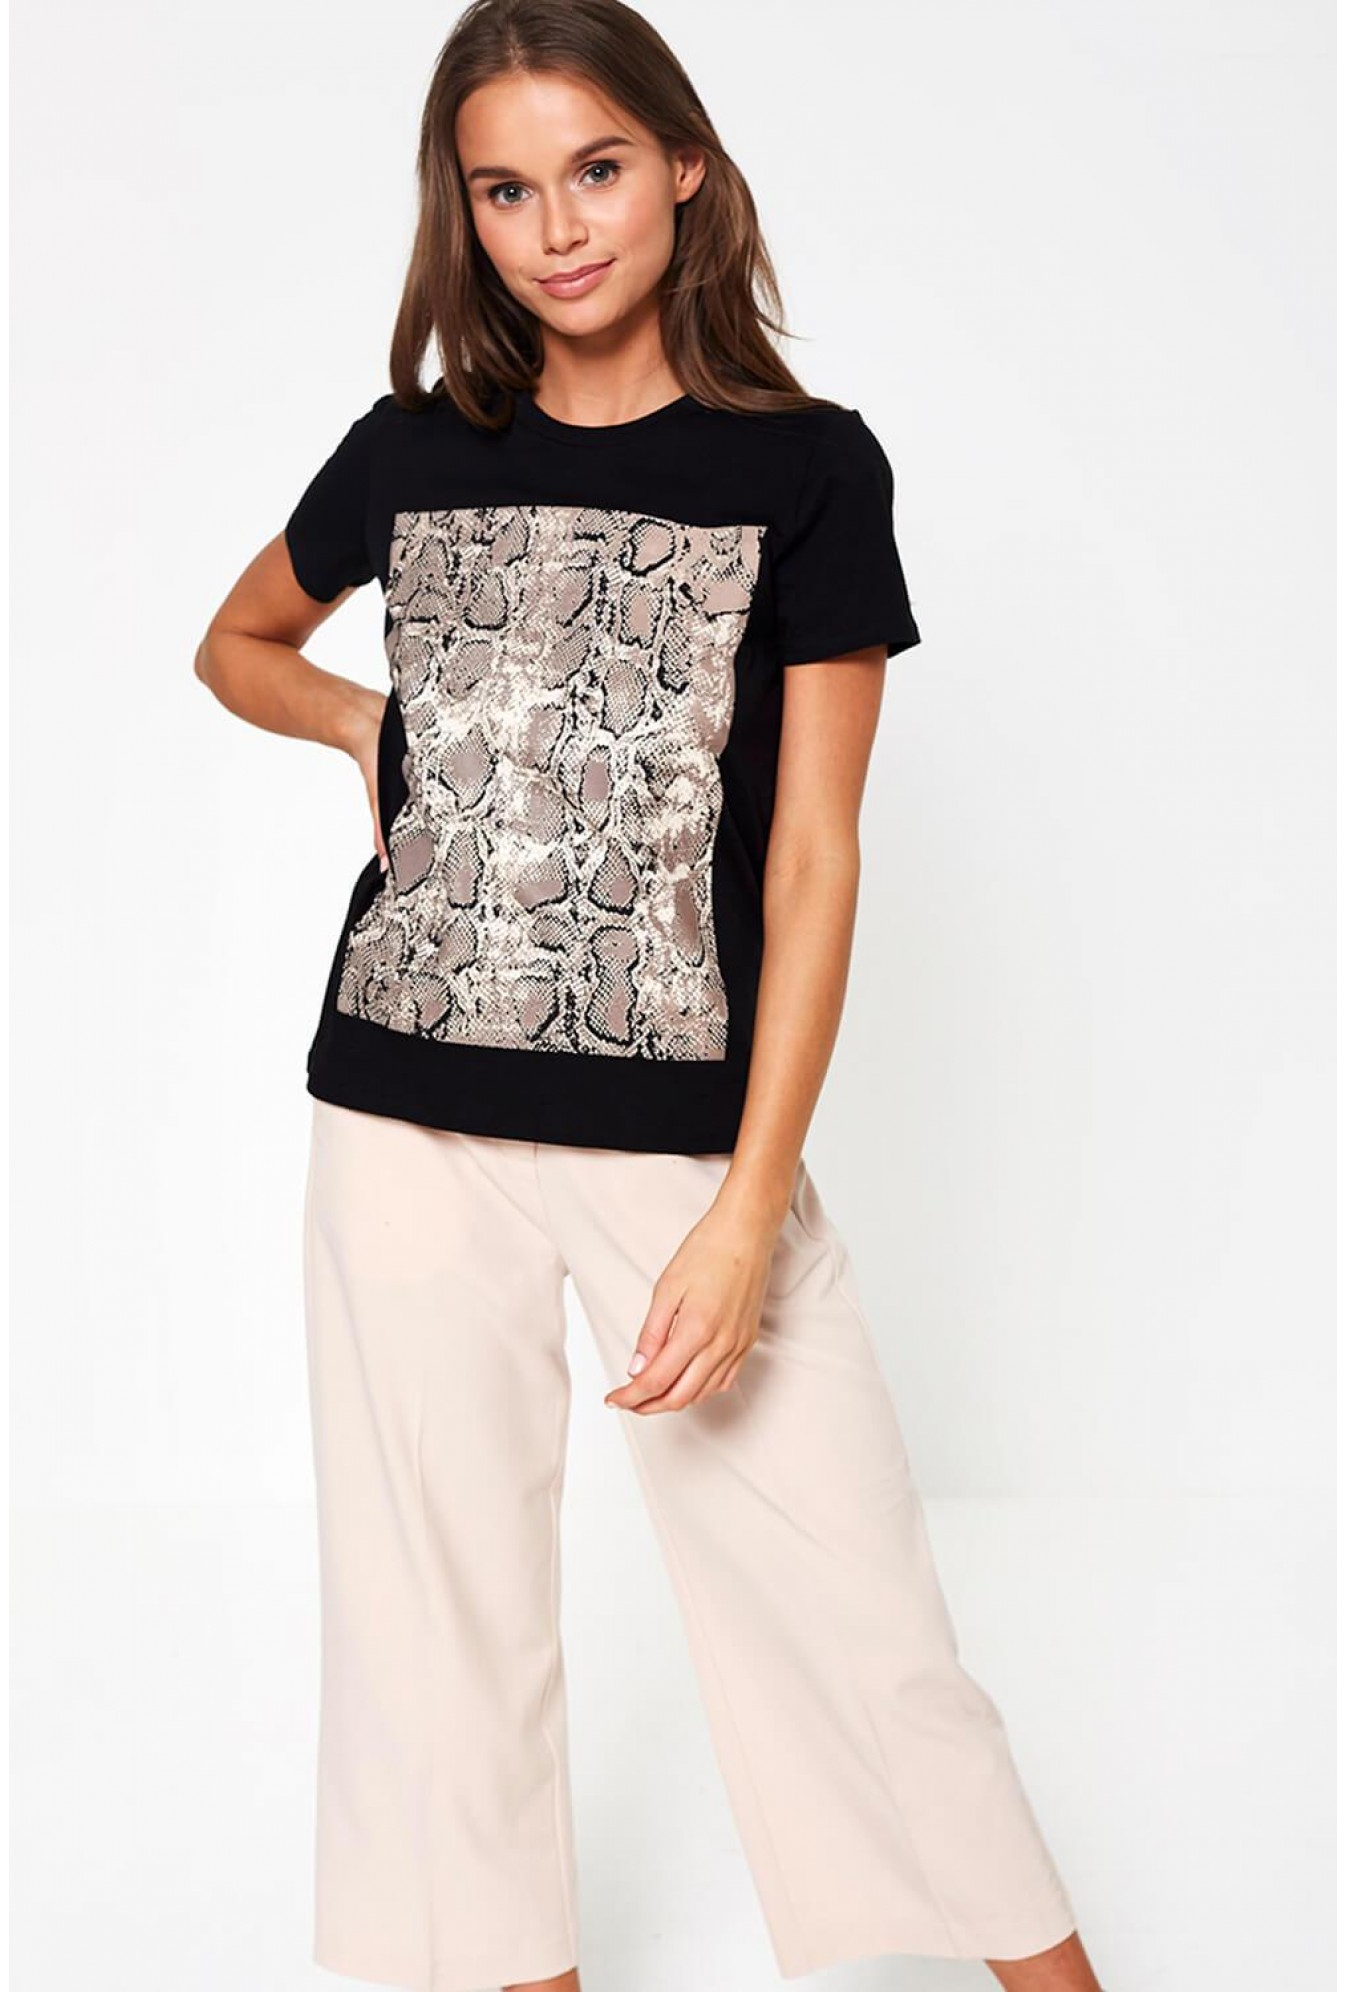 054a748e3c6d Only Luna Short Sleeve Snakeskin Print T-shirt in Black | iCLOTHING